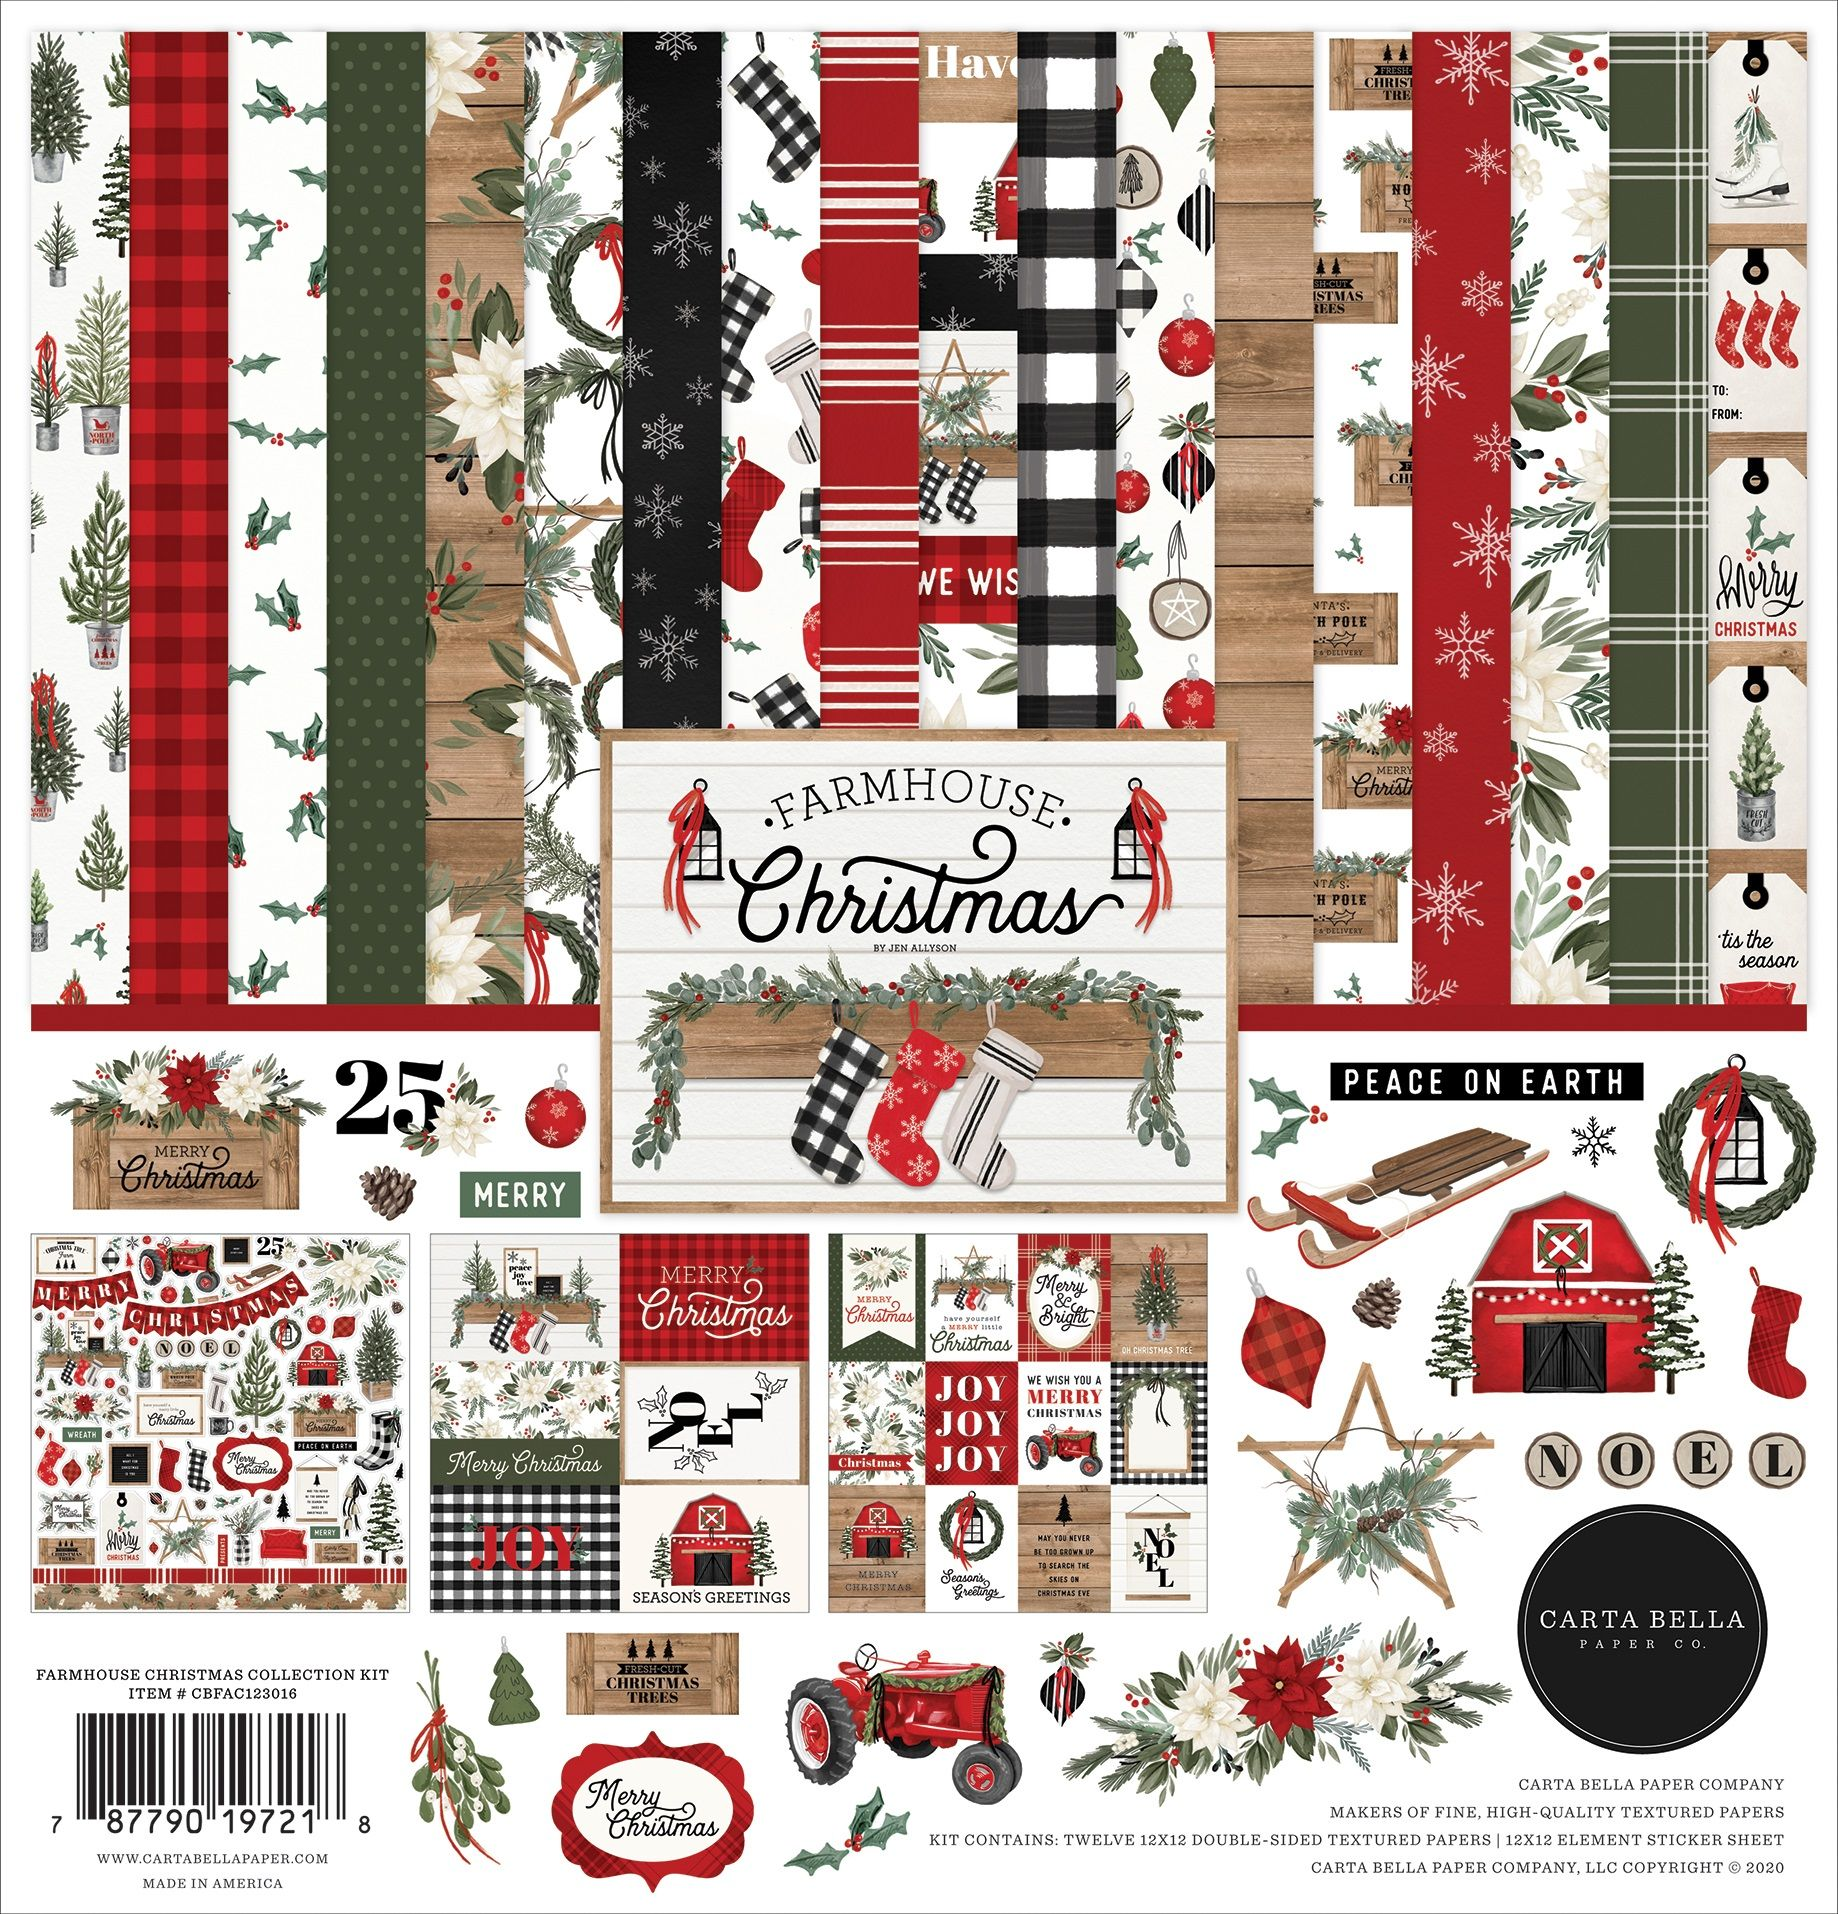 Ranger Mixed Media Tags Assortment Paper 3 Each of #2 Tim Holtz One Size 5 /& #8